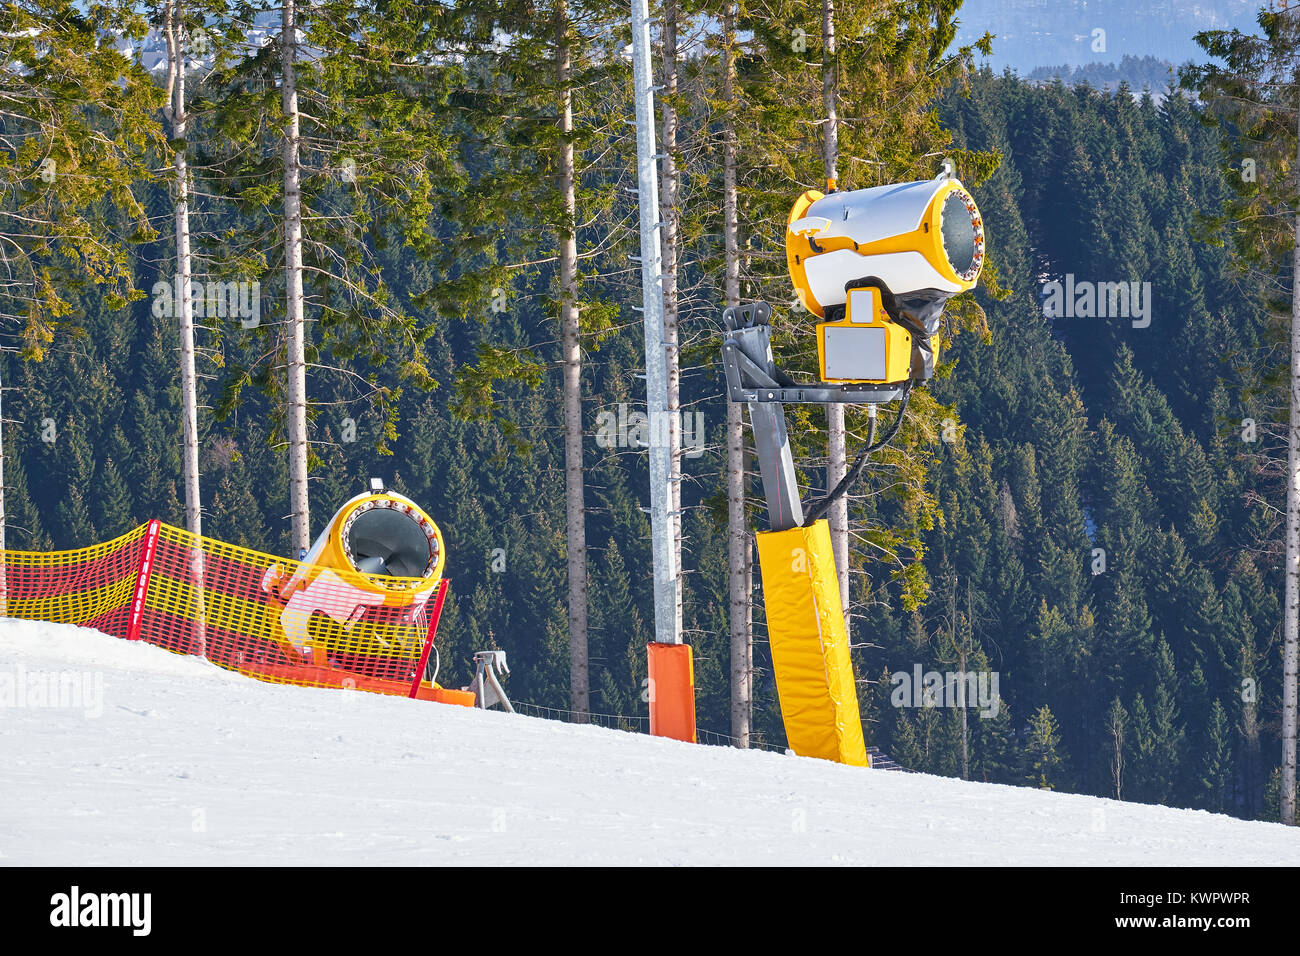 Two turned off yellow snow cannons on a piste at Ski Carousel Winterberg with pine forest in the background - Stock Image